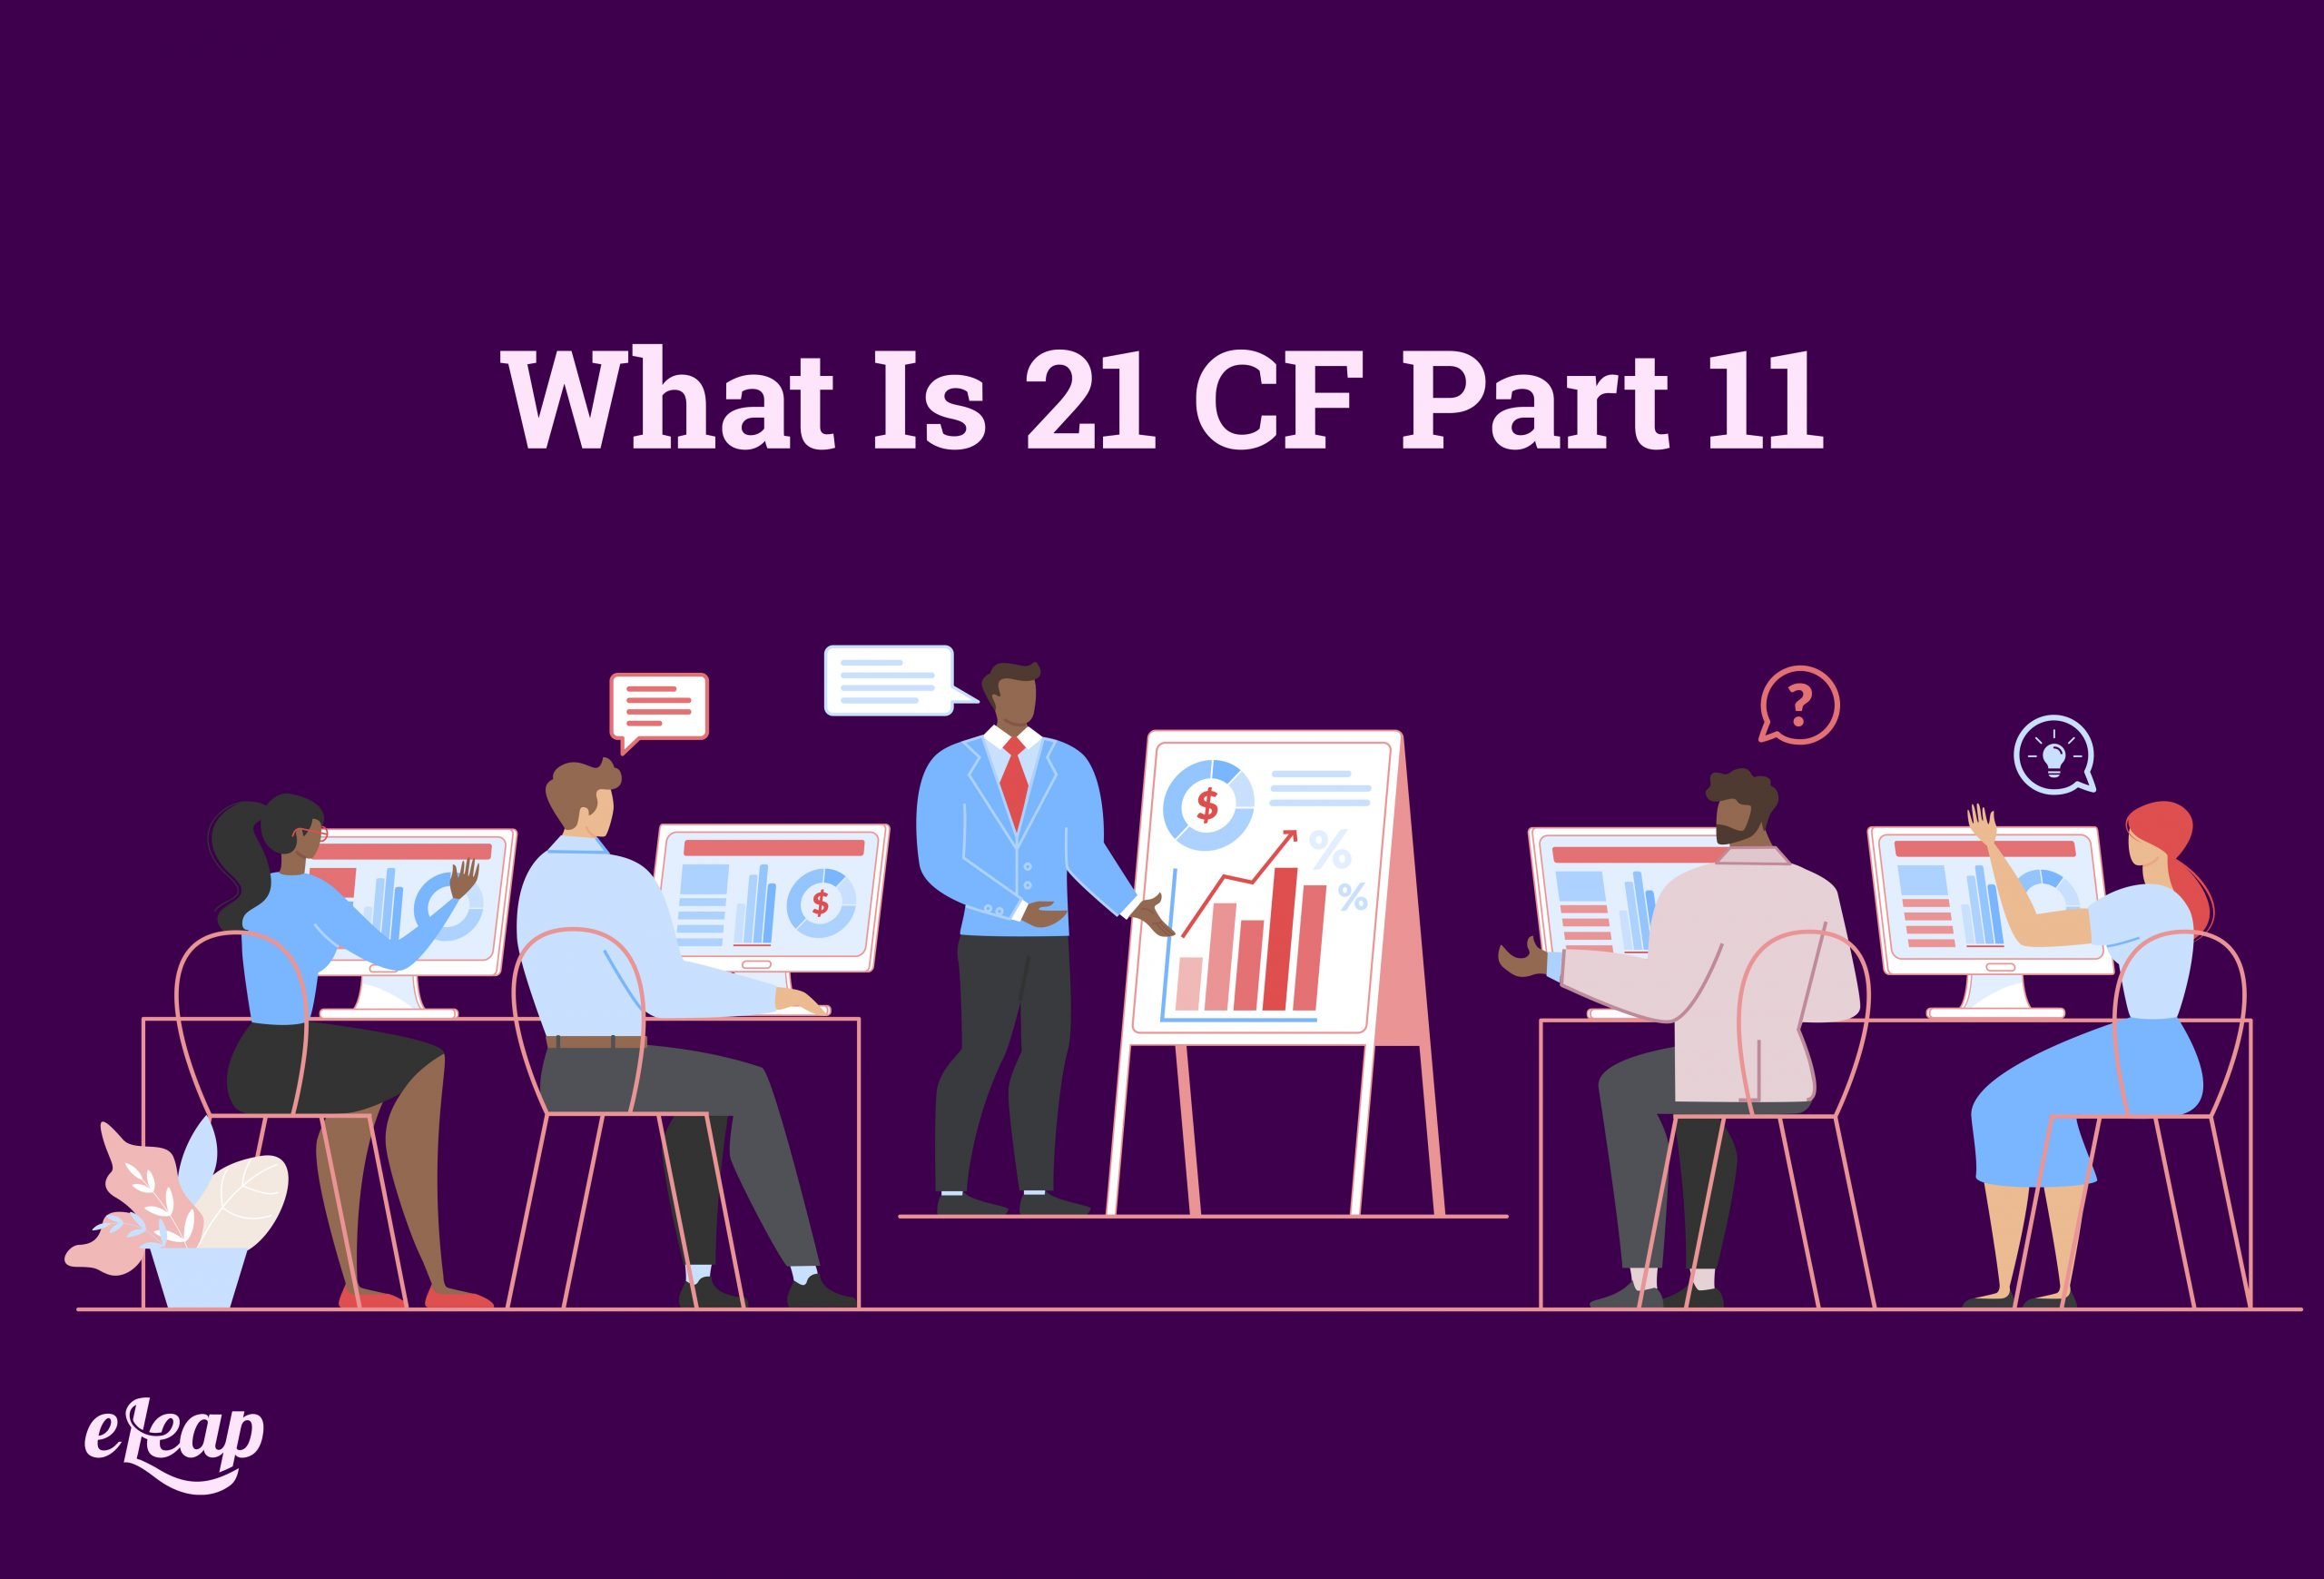 What Is 21 CF Part 11